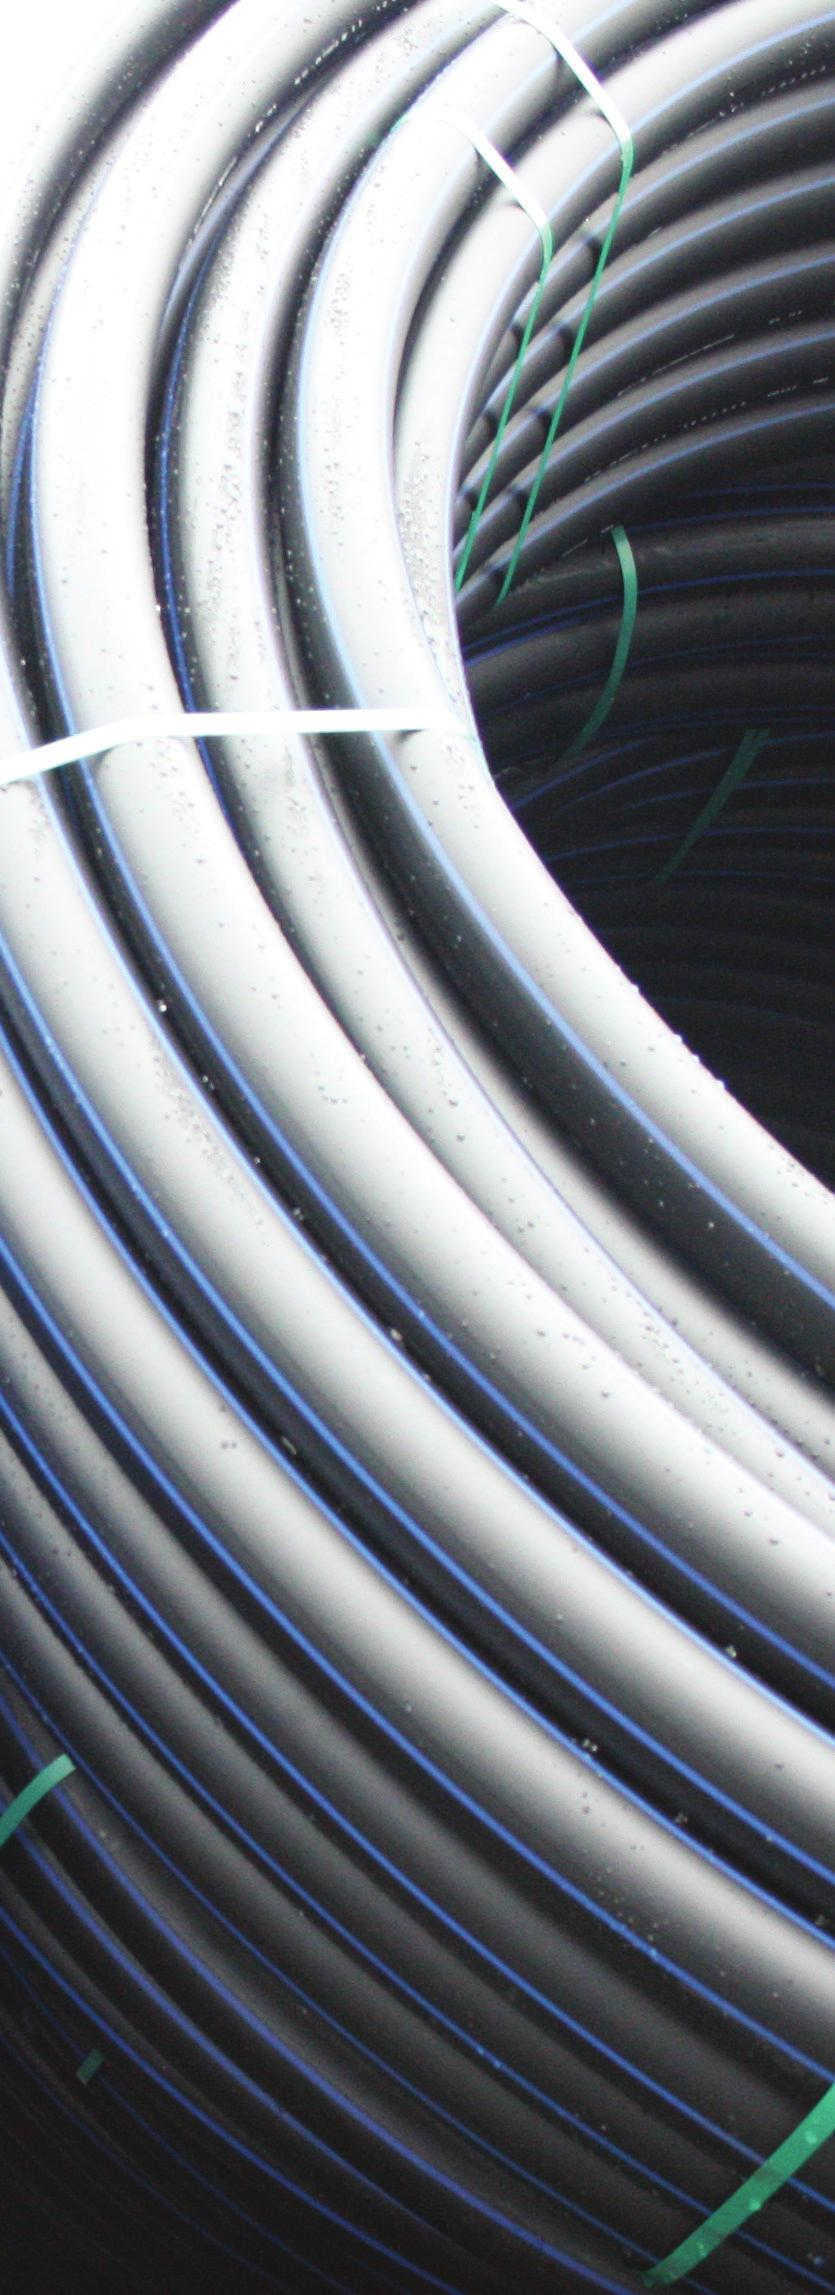 Production Of Polyethylene And Polypropylene Pipes Water Supply For Electrical Wiring Metal Pvc Pe Compare Evaluate Heat Influence On Compared To Many Other Materials The Reaction